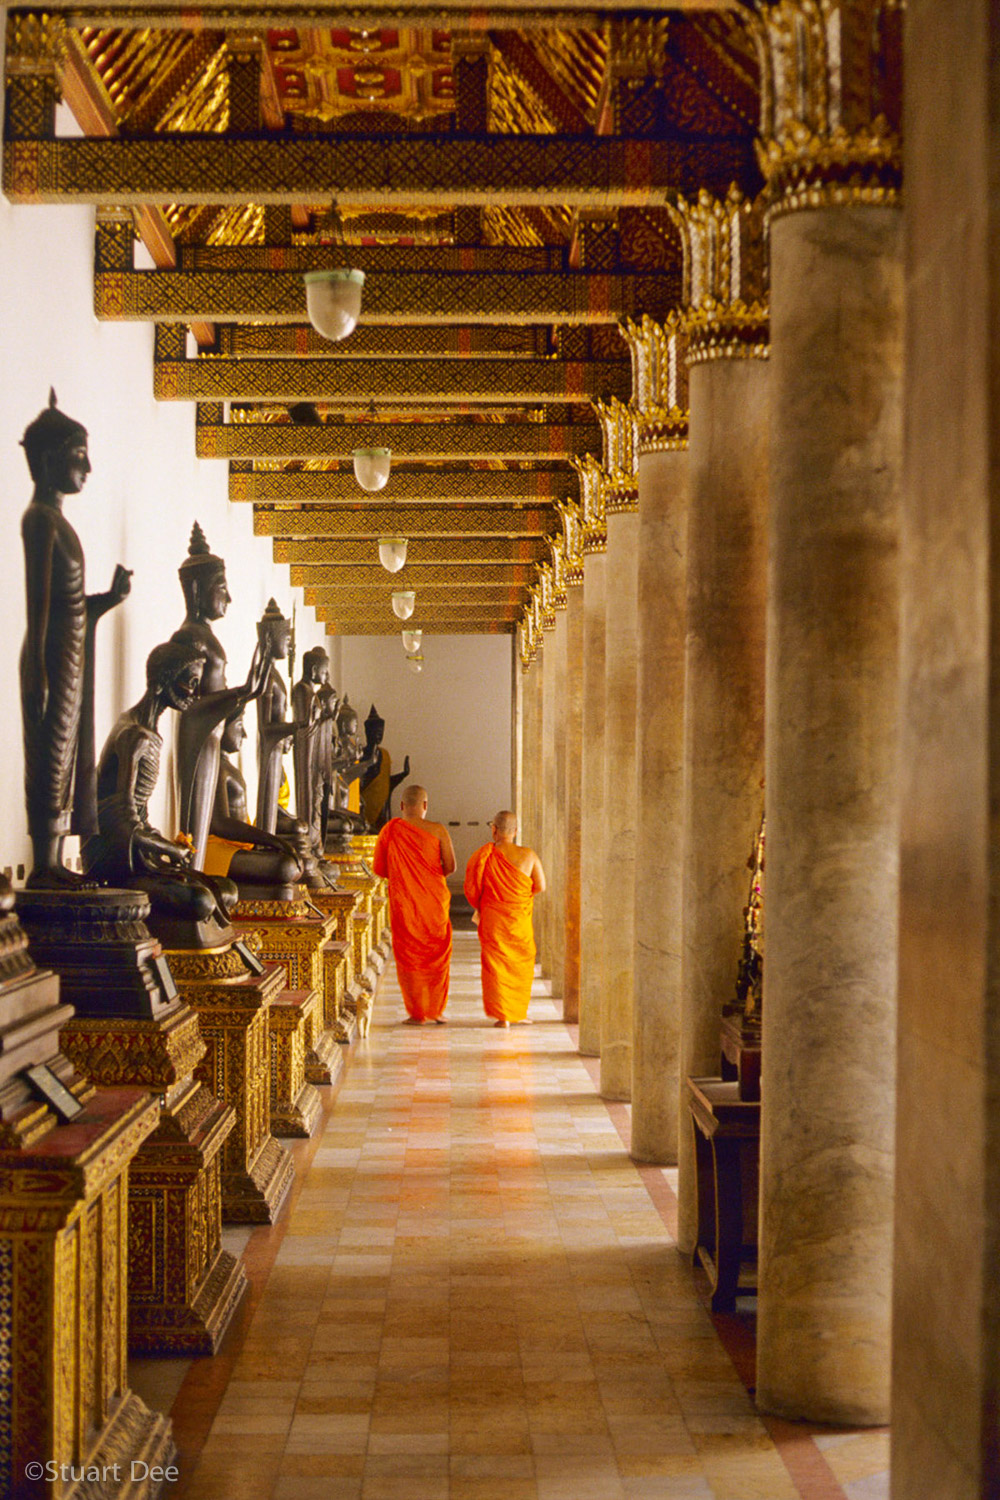 Two Buddhist monks walking down hallway, Marble  Temple,  Bangkok, Thailand